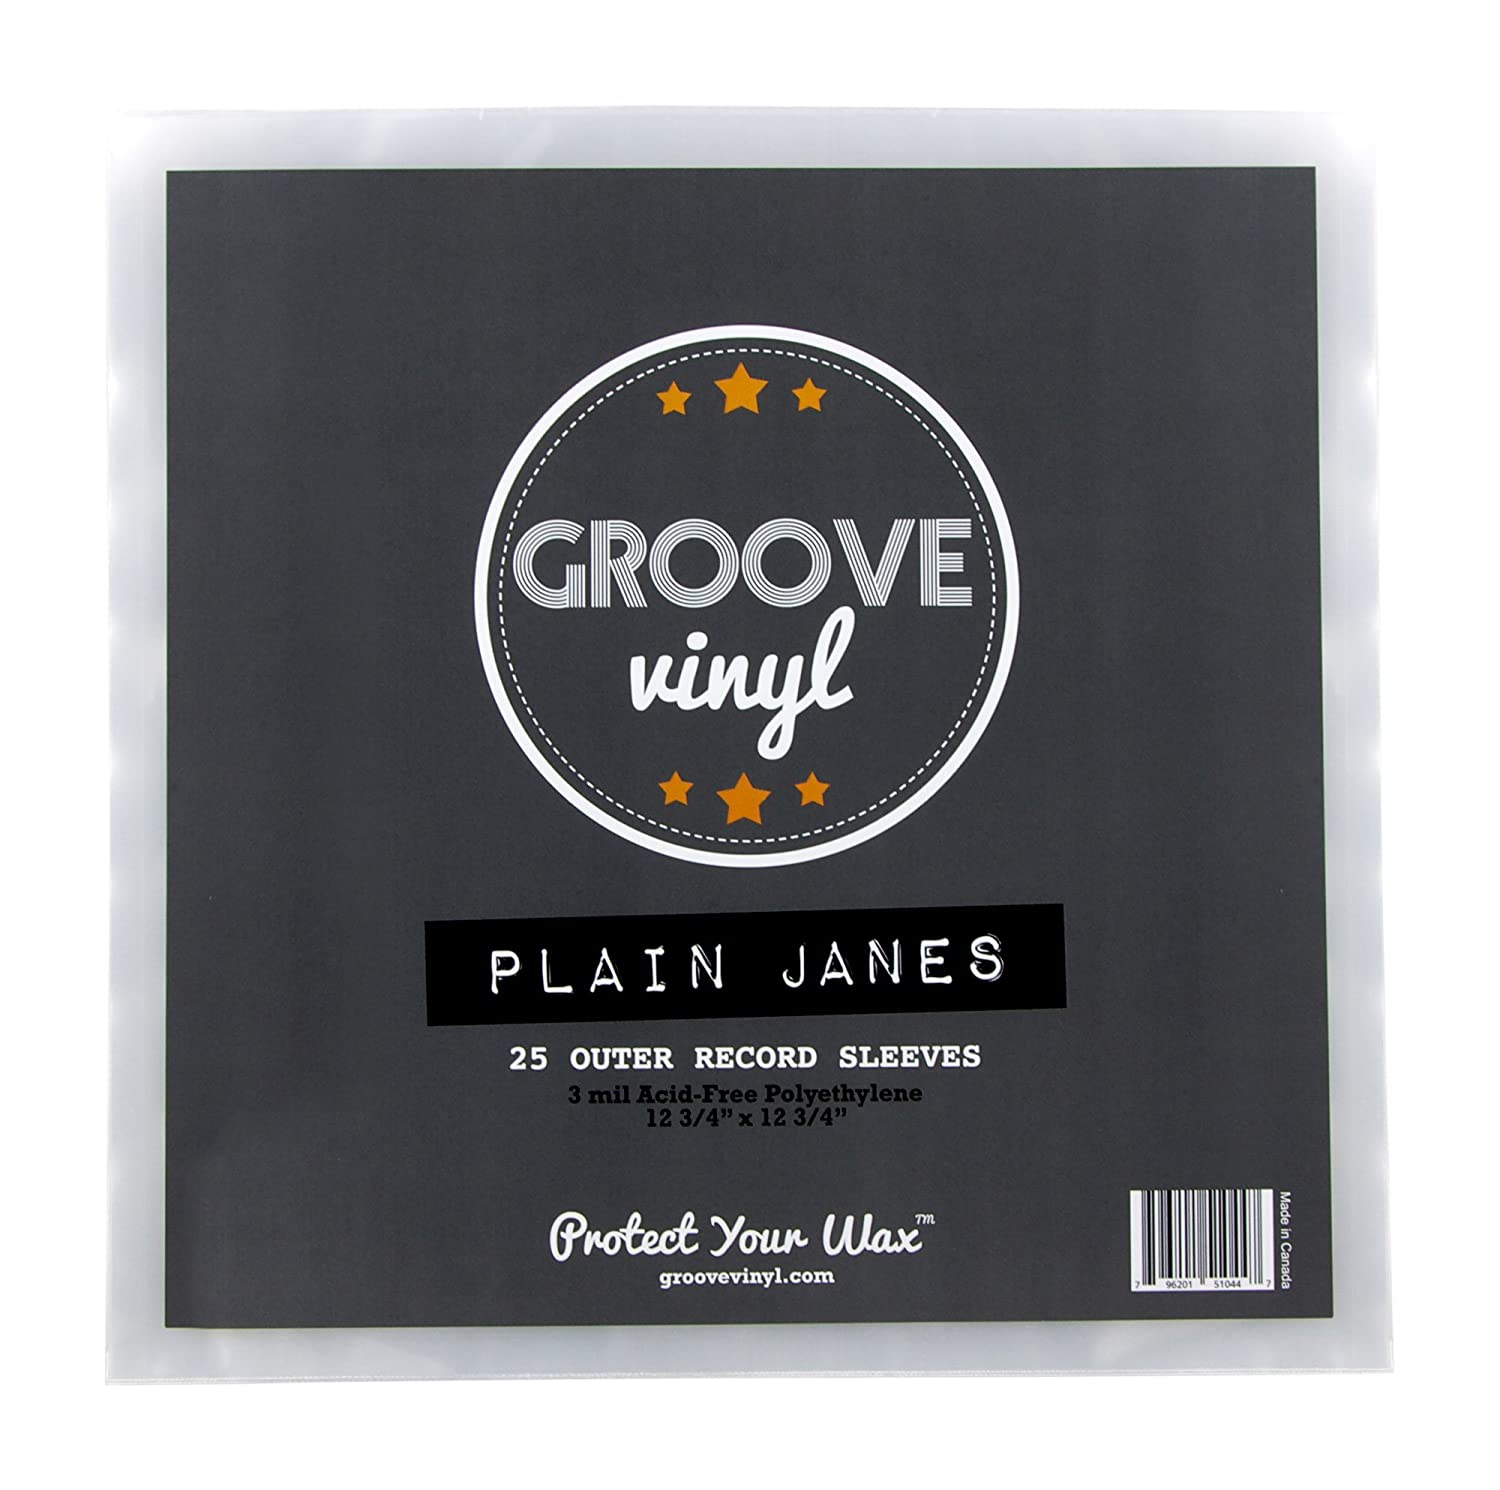 Groove Vinyl 12 Inch Outer Record Sleeves 25 Pack